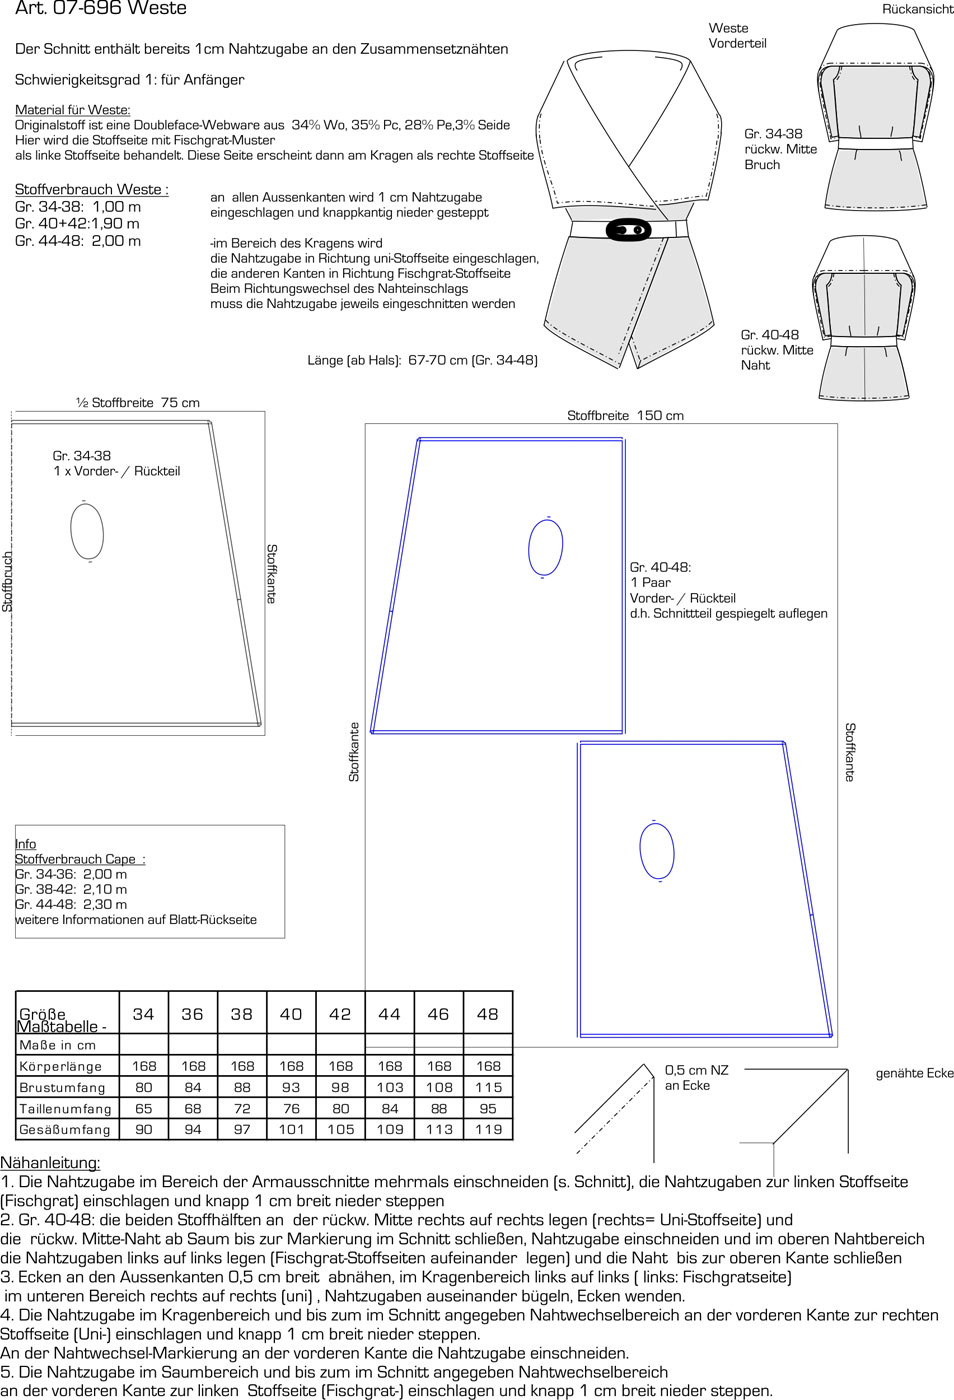 Schnittmuster - Weste - 07-696 - Pattern Company